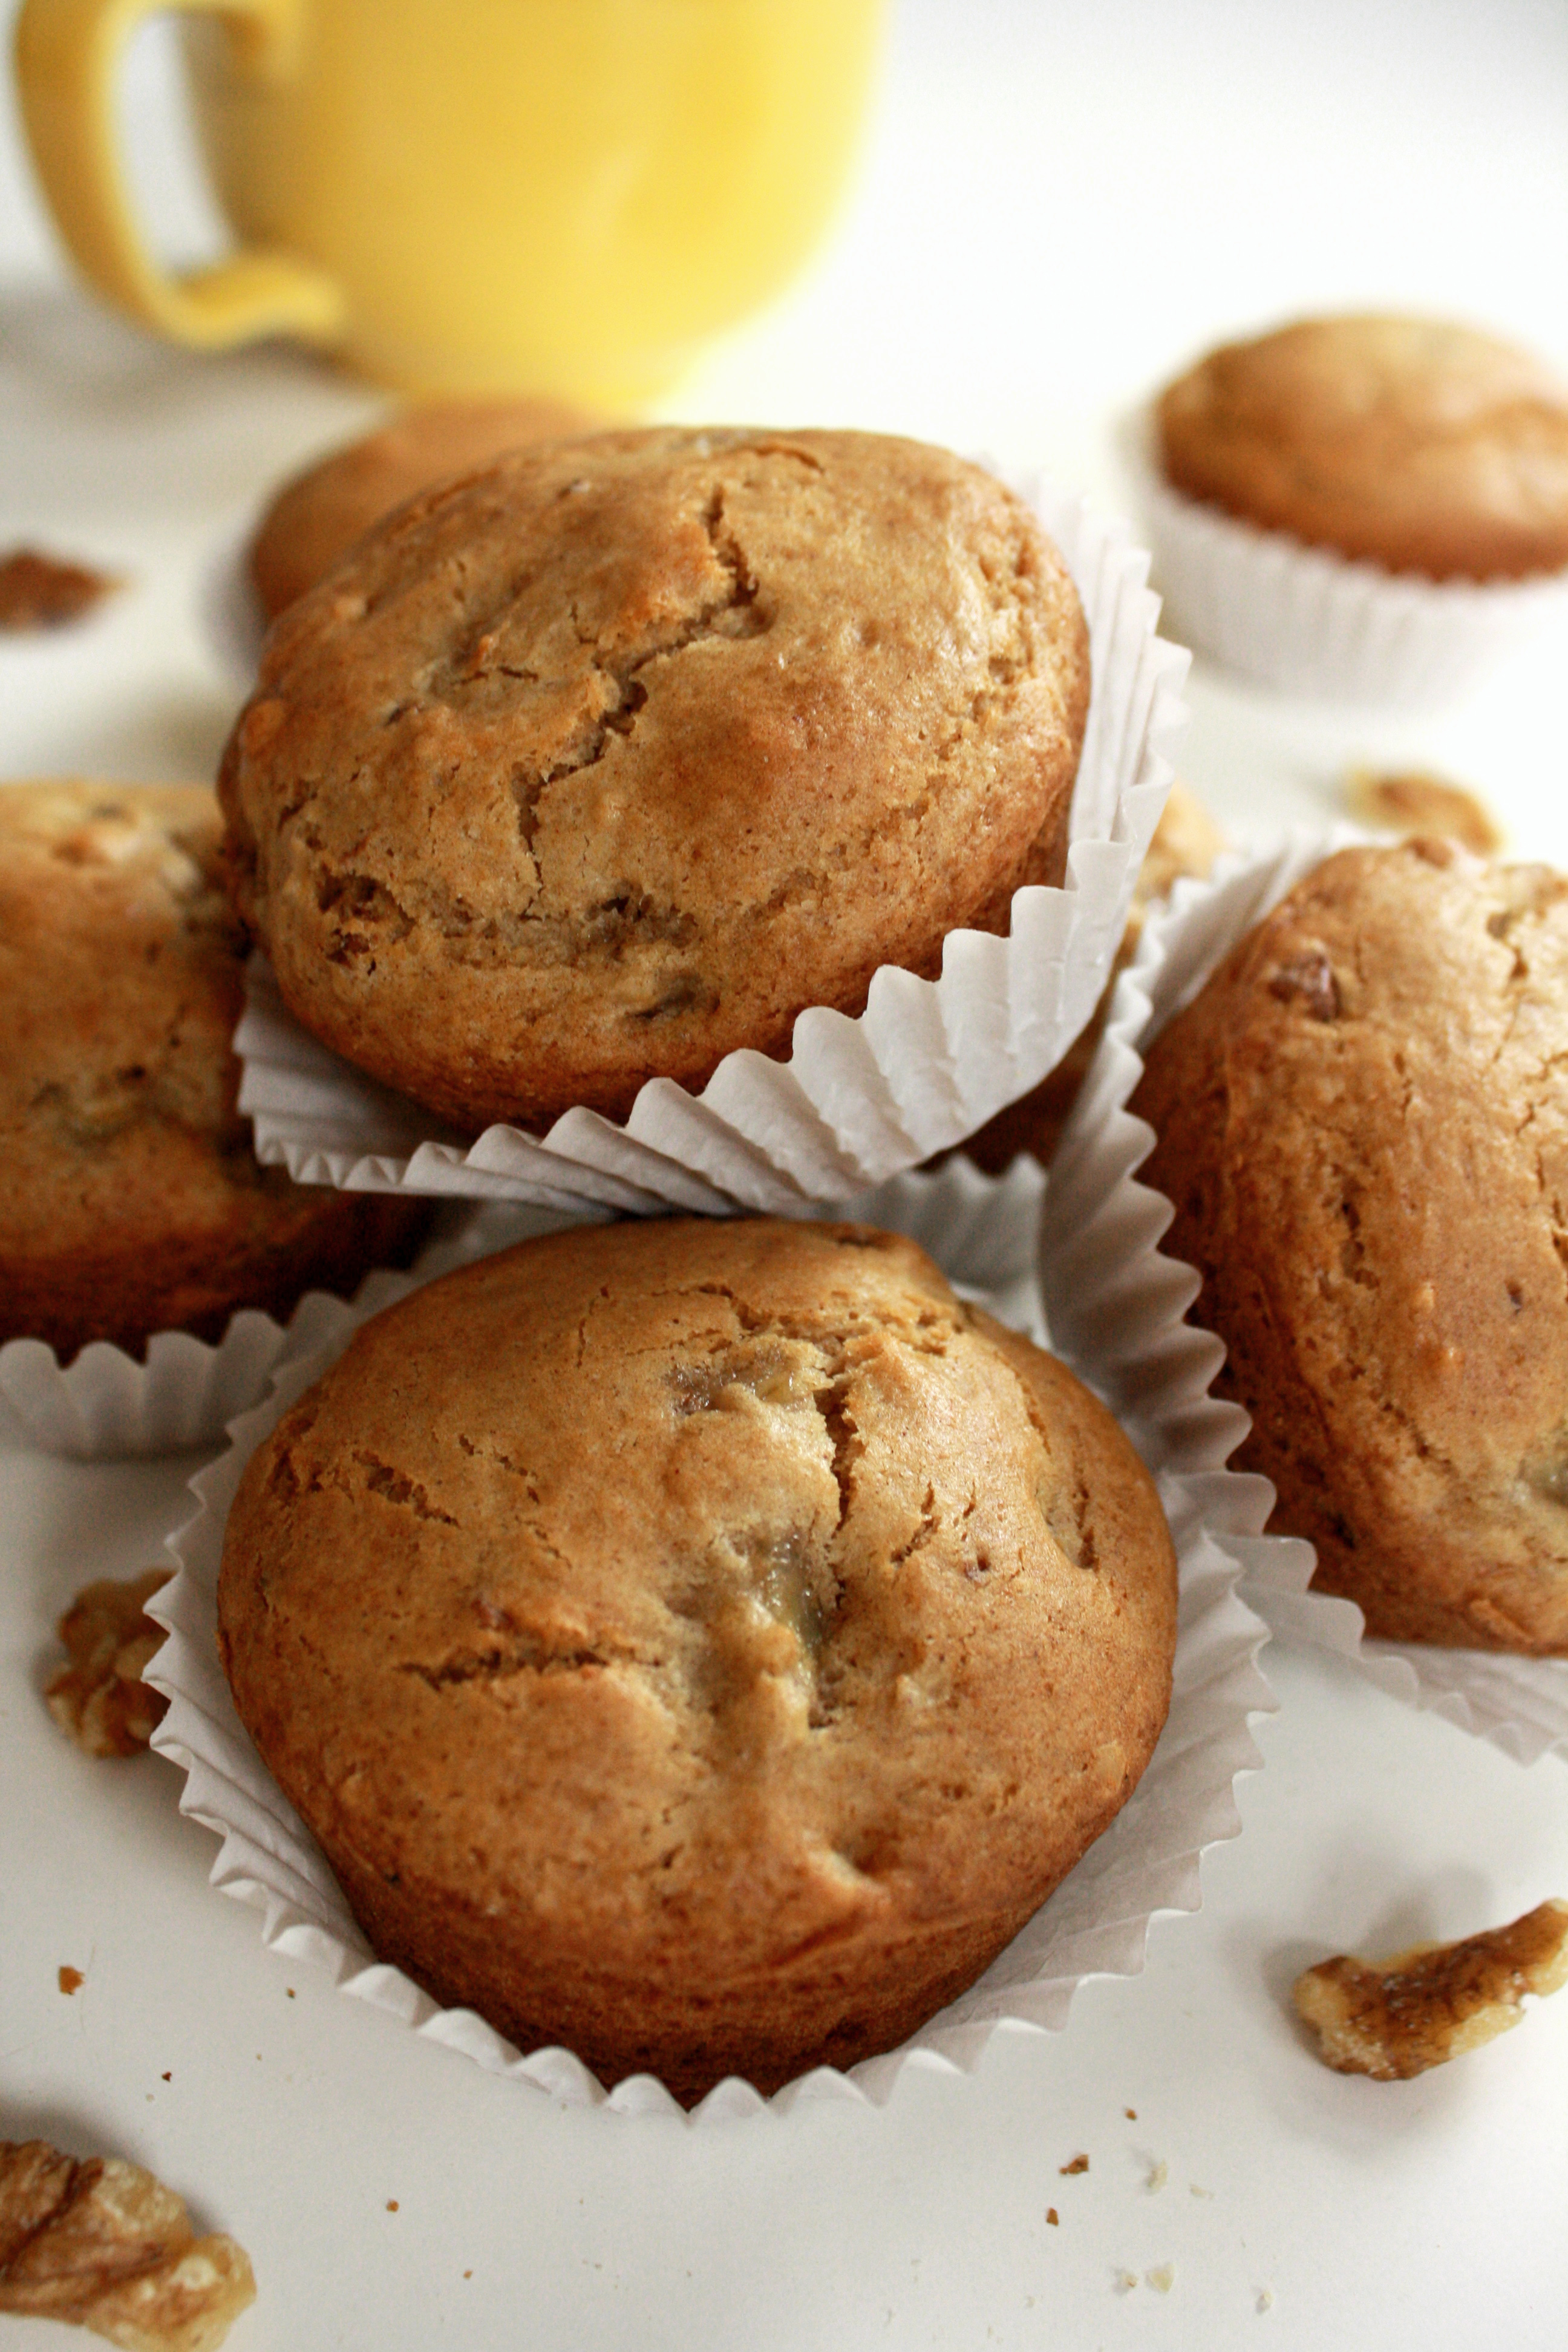 Banana Nut Muffins | Cakes 'n' Bakes